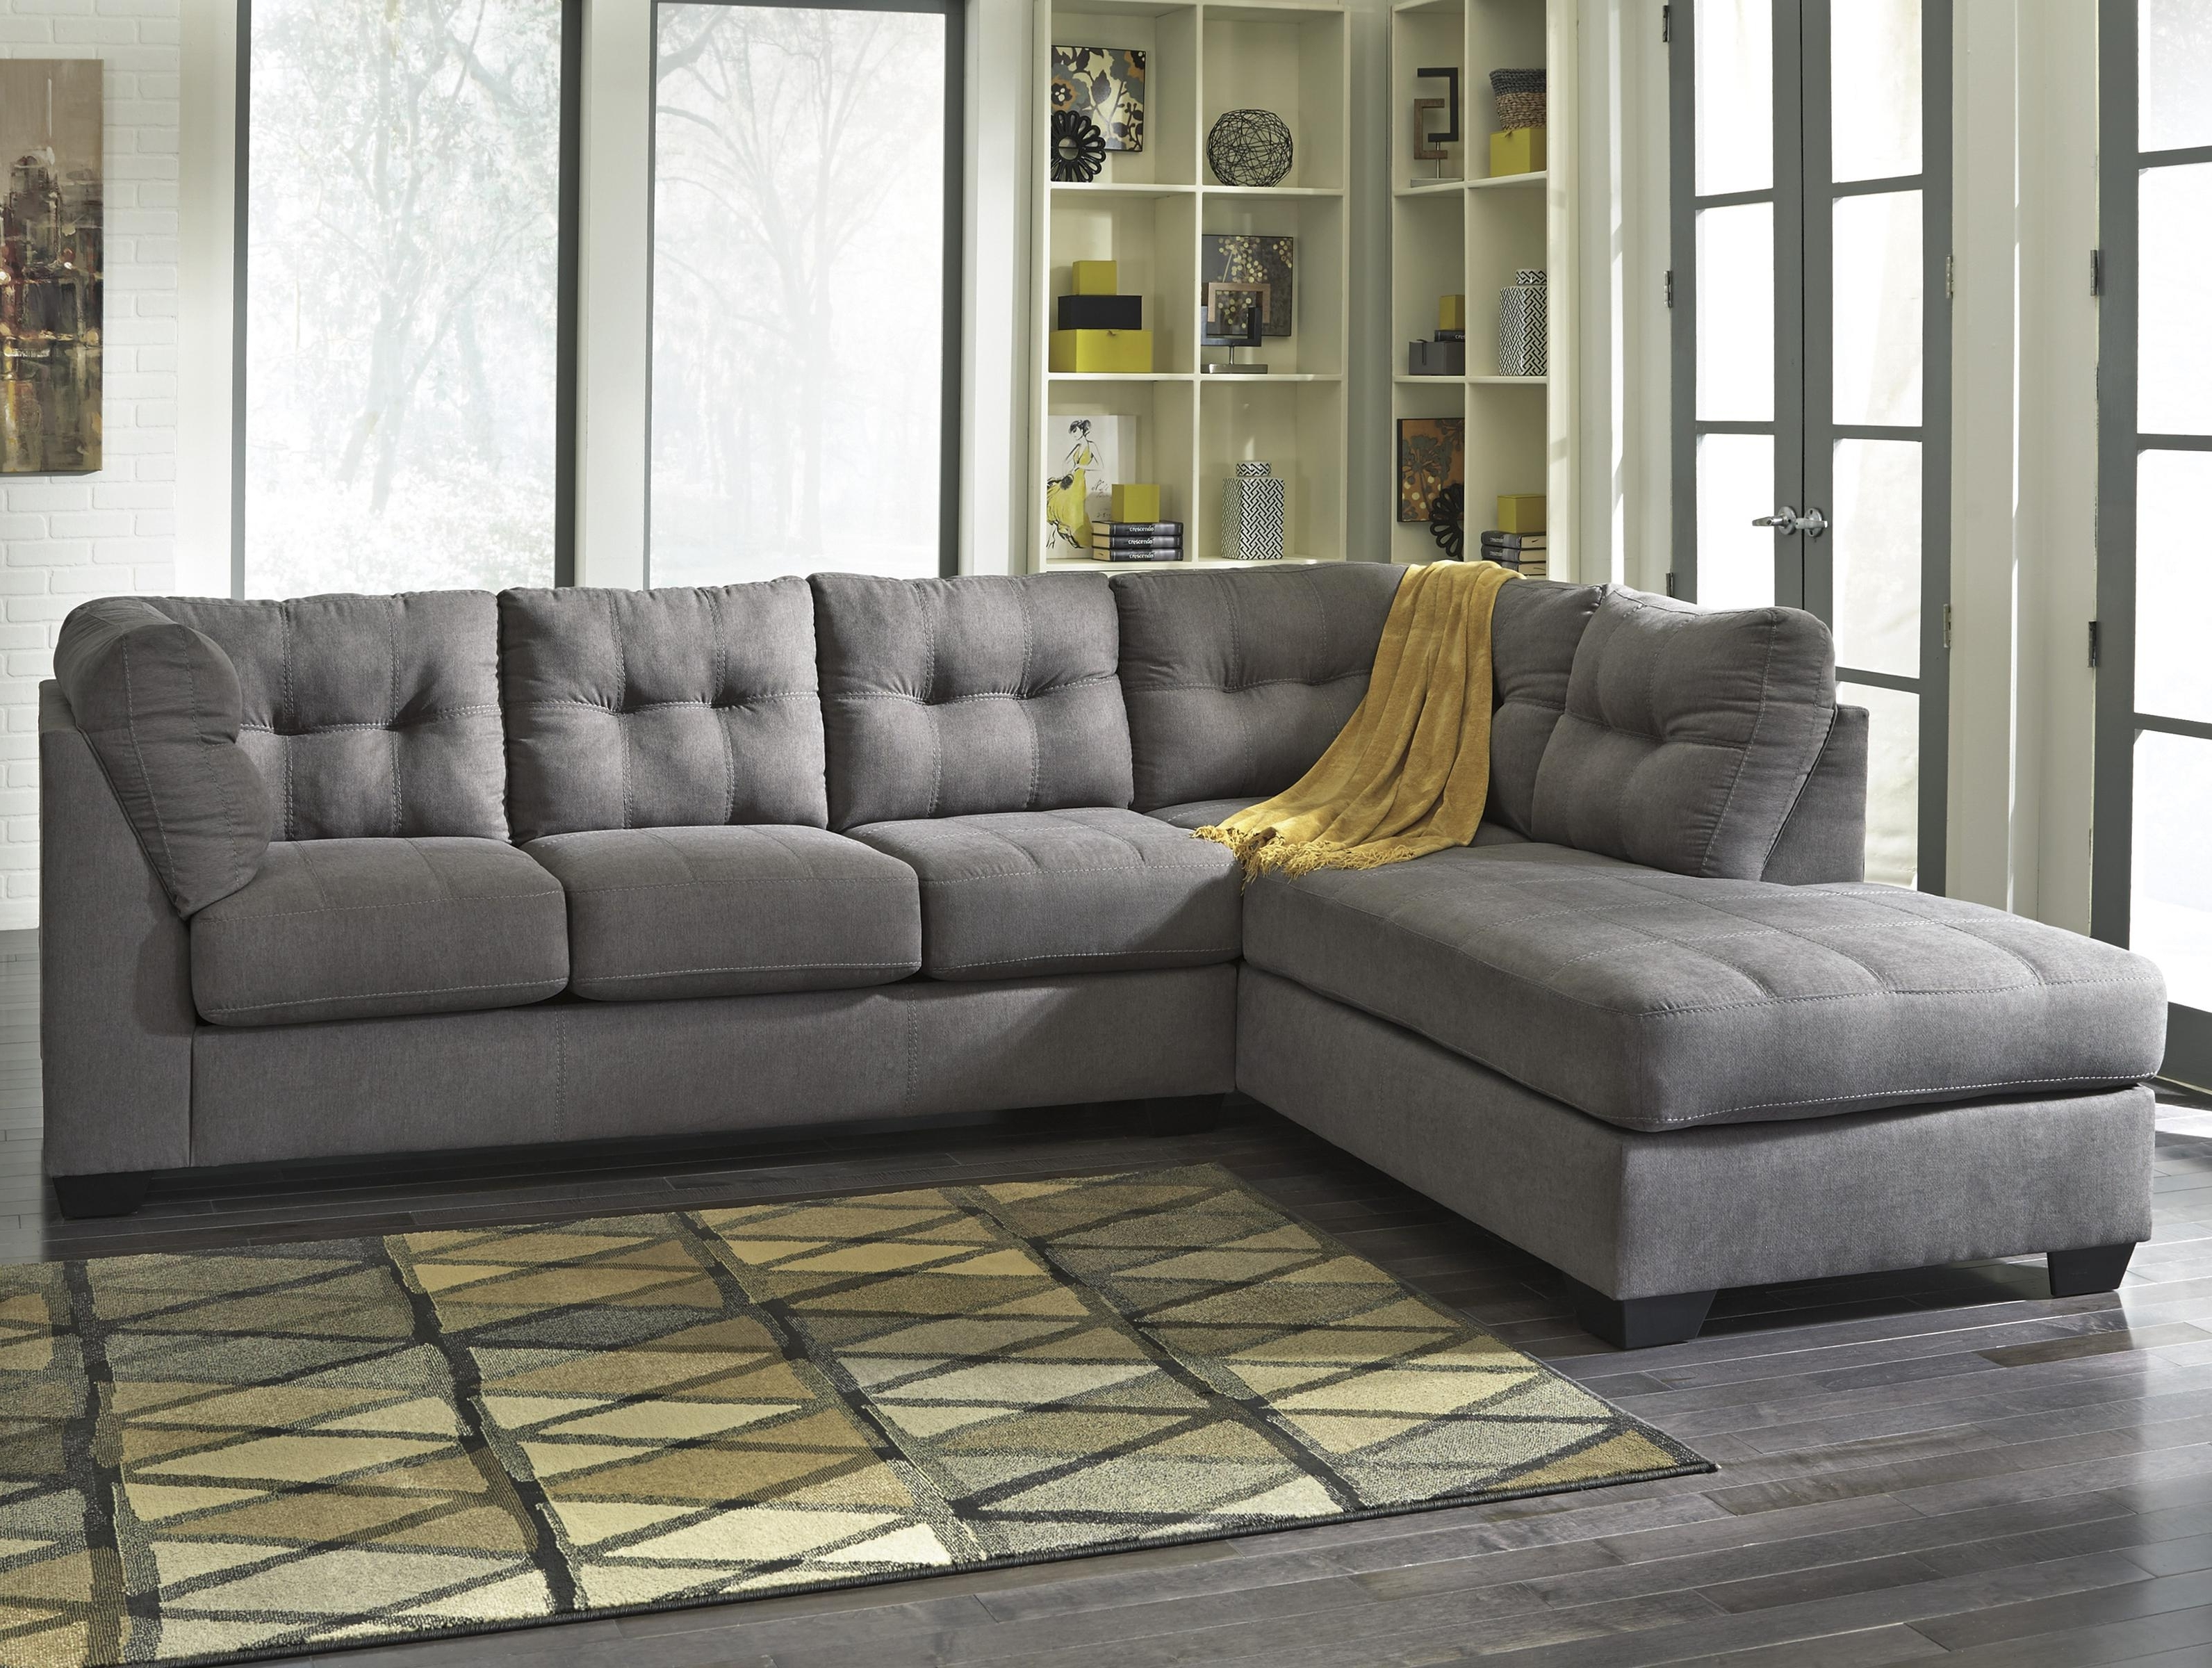 Benchcraft Maier – Charcoal 2 Piece Sectional With Left Chaise Regarding Newest Gray Couches With Chaise (View 3 of 15)